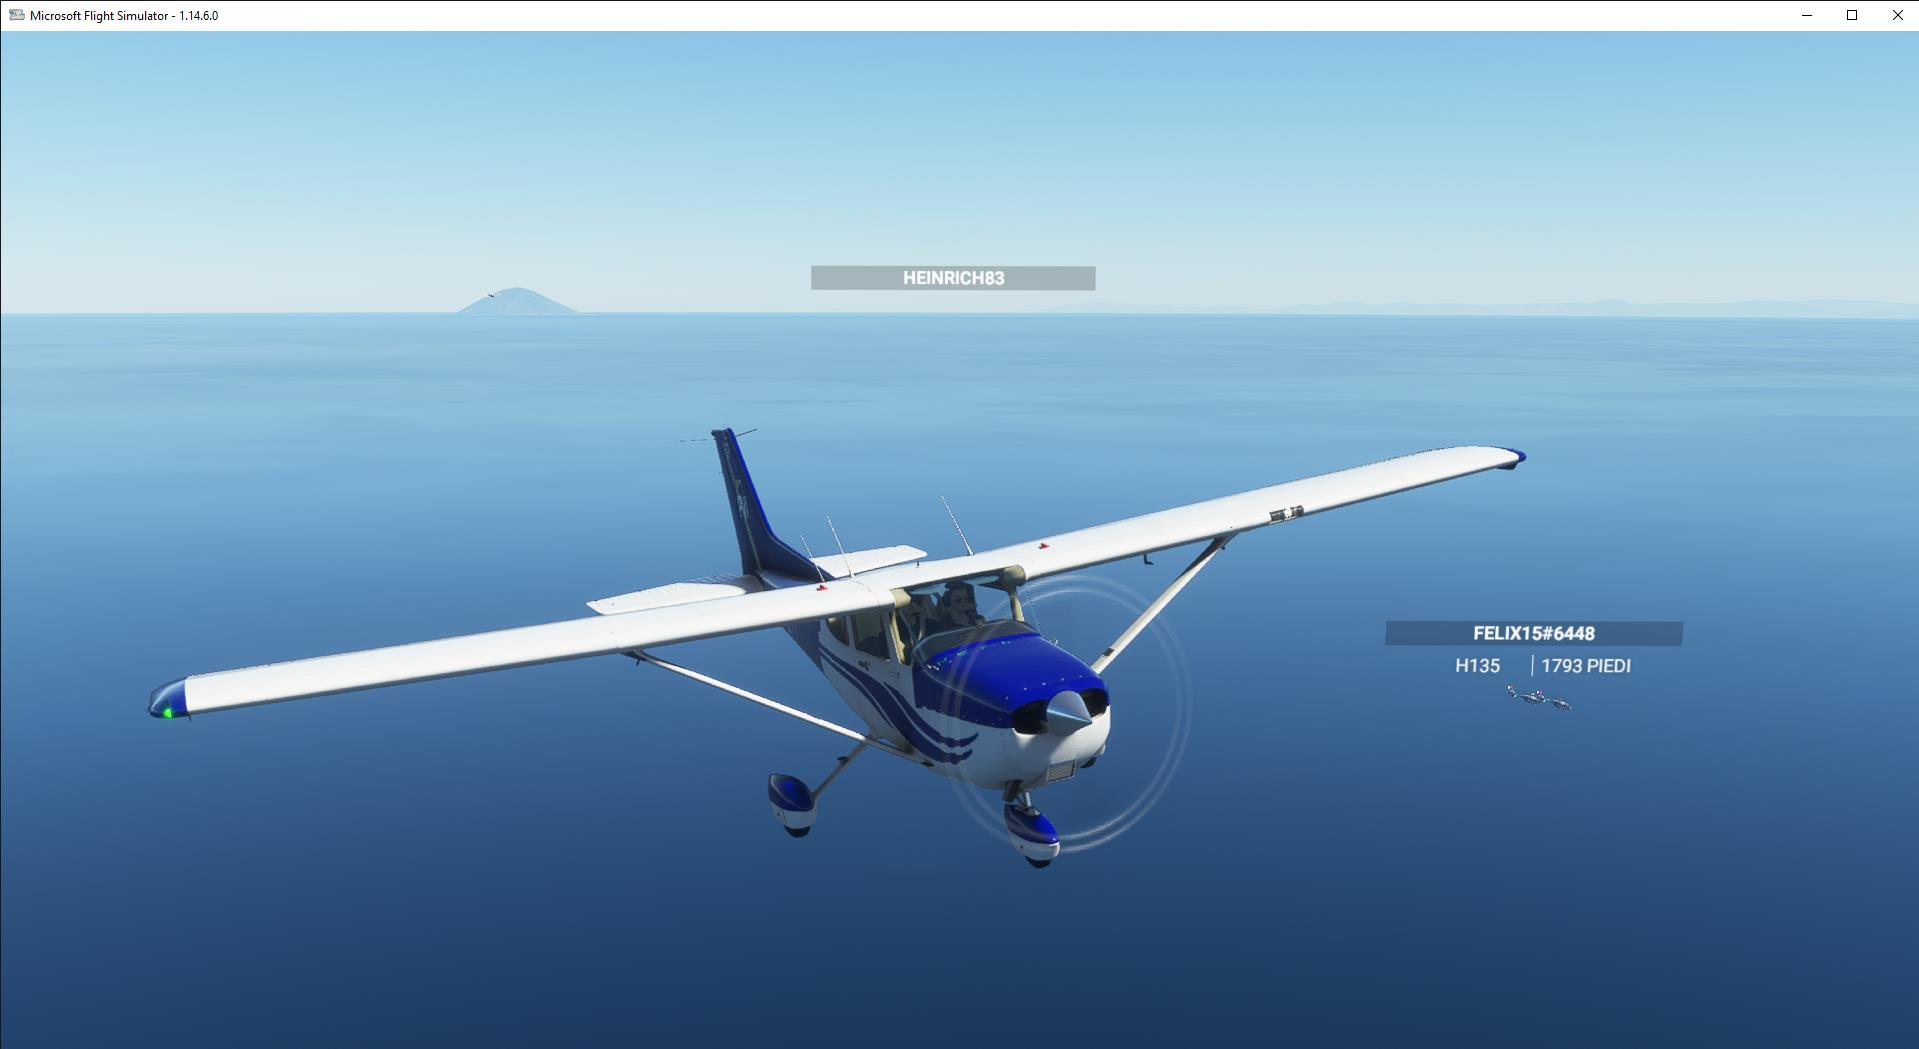 https://vivendobyte.blob.core.windows.net/59034/Microsoft Flight Simulator - 1.14.6.0 05_04_2021 22_22_17.jpg